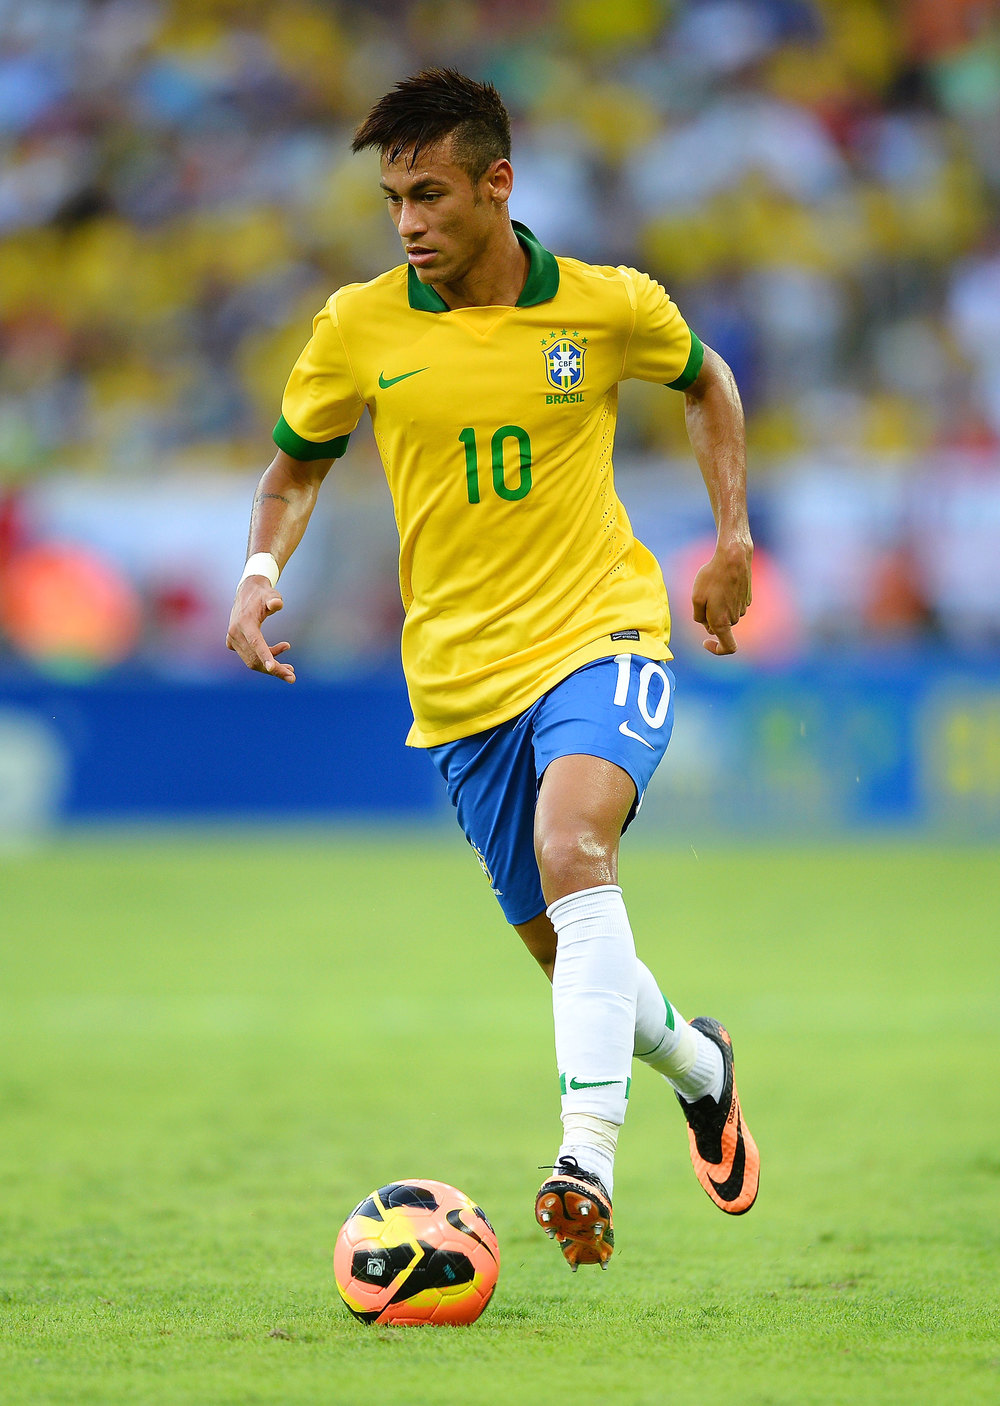 Brazil will heavily rely on forward Neymar for their high octane offense